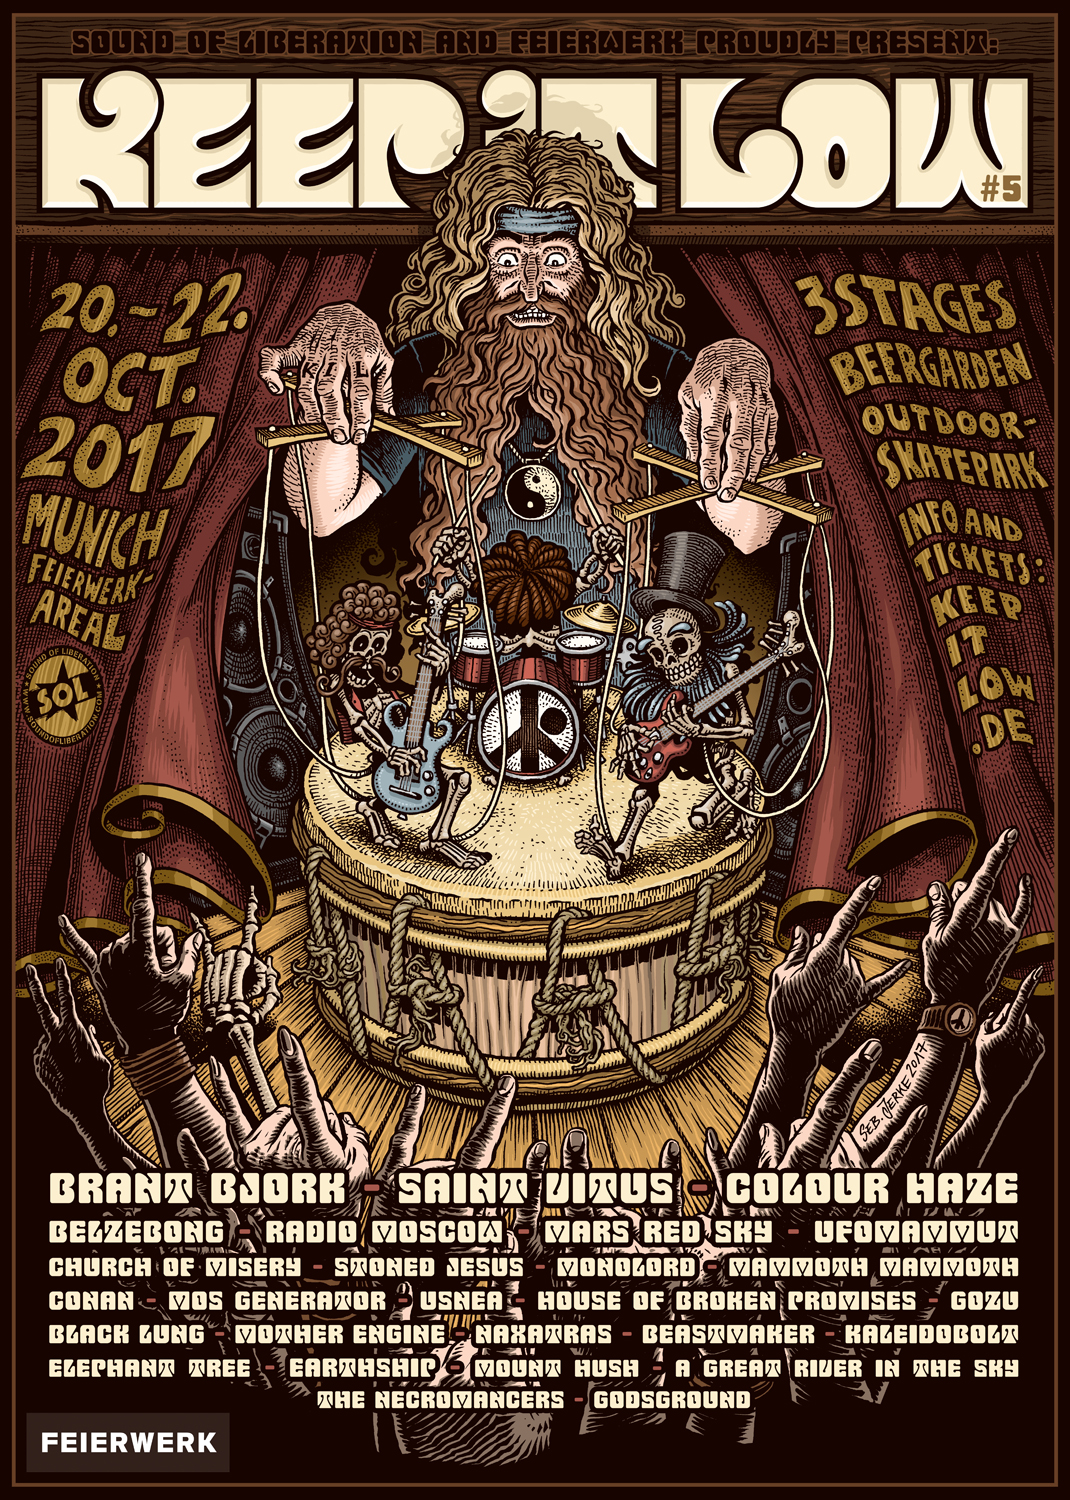 Desertfest Amberes - Página 2 Keep-it-low-2017